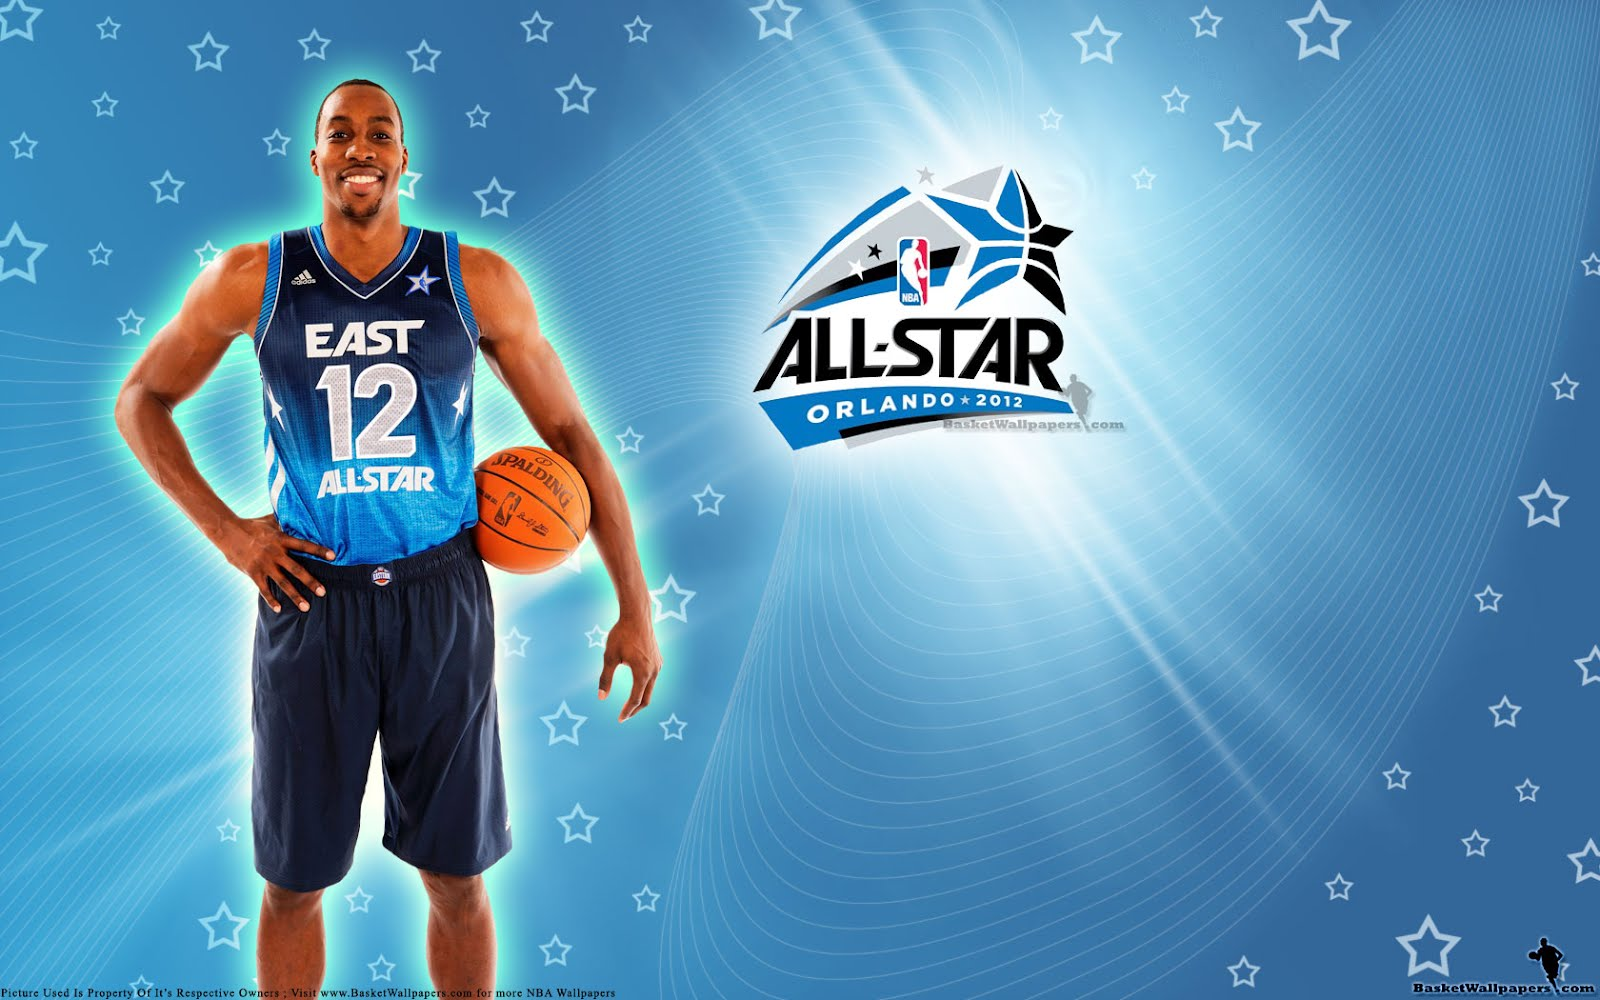 http://1.bp.blogspot.com/-ep9cE5PTWb0/Tz_FeFy3X2I/AAAAAAAAPkk/WrNXAF3WMXA/s1600/2012-NBA-All-Star-Dwight-Howard-Wallpaper-BasketWallpapers.com-.jpg